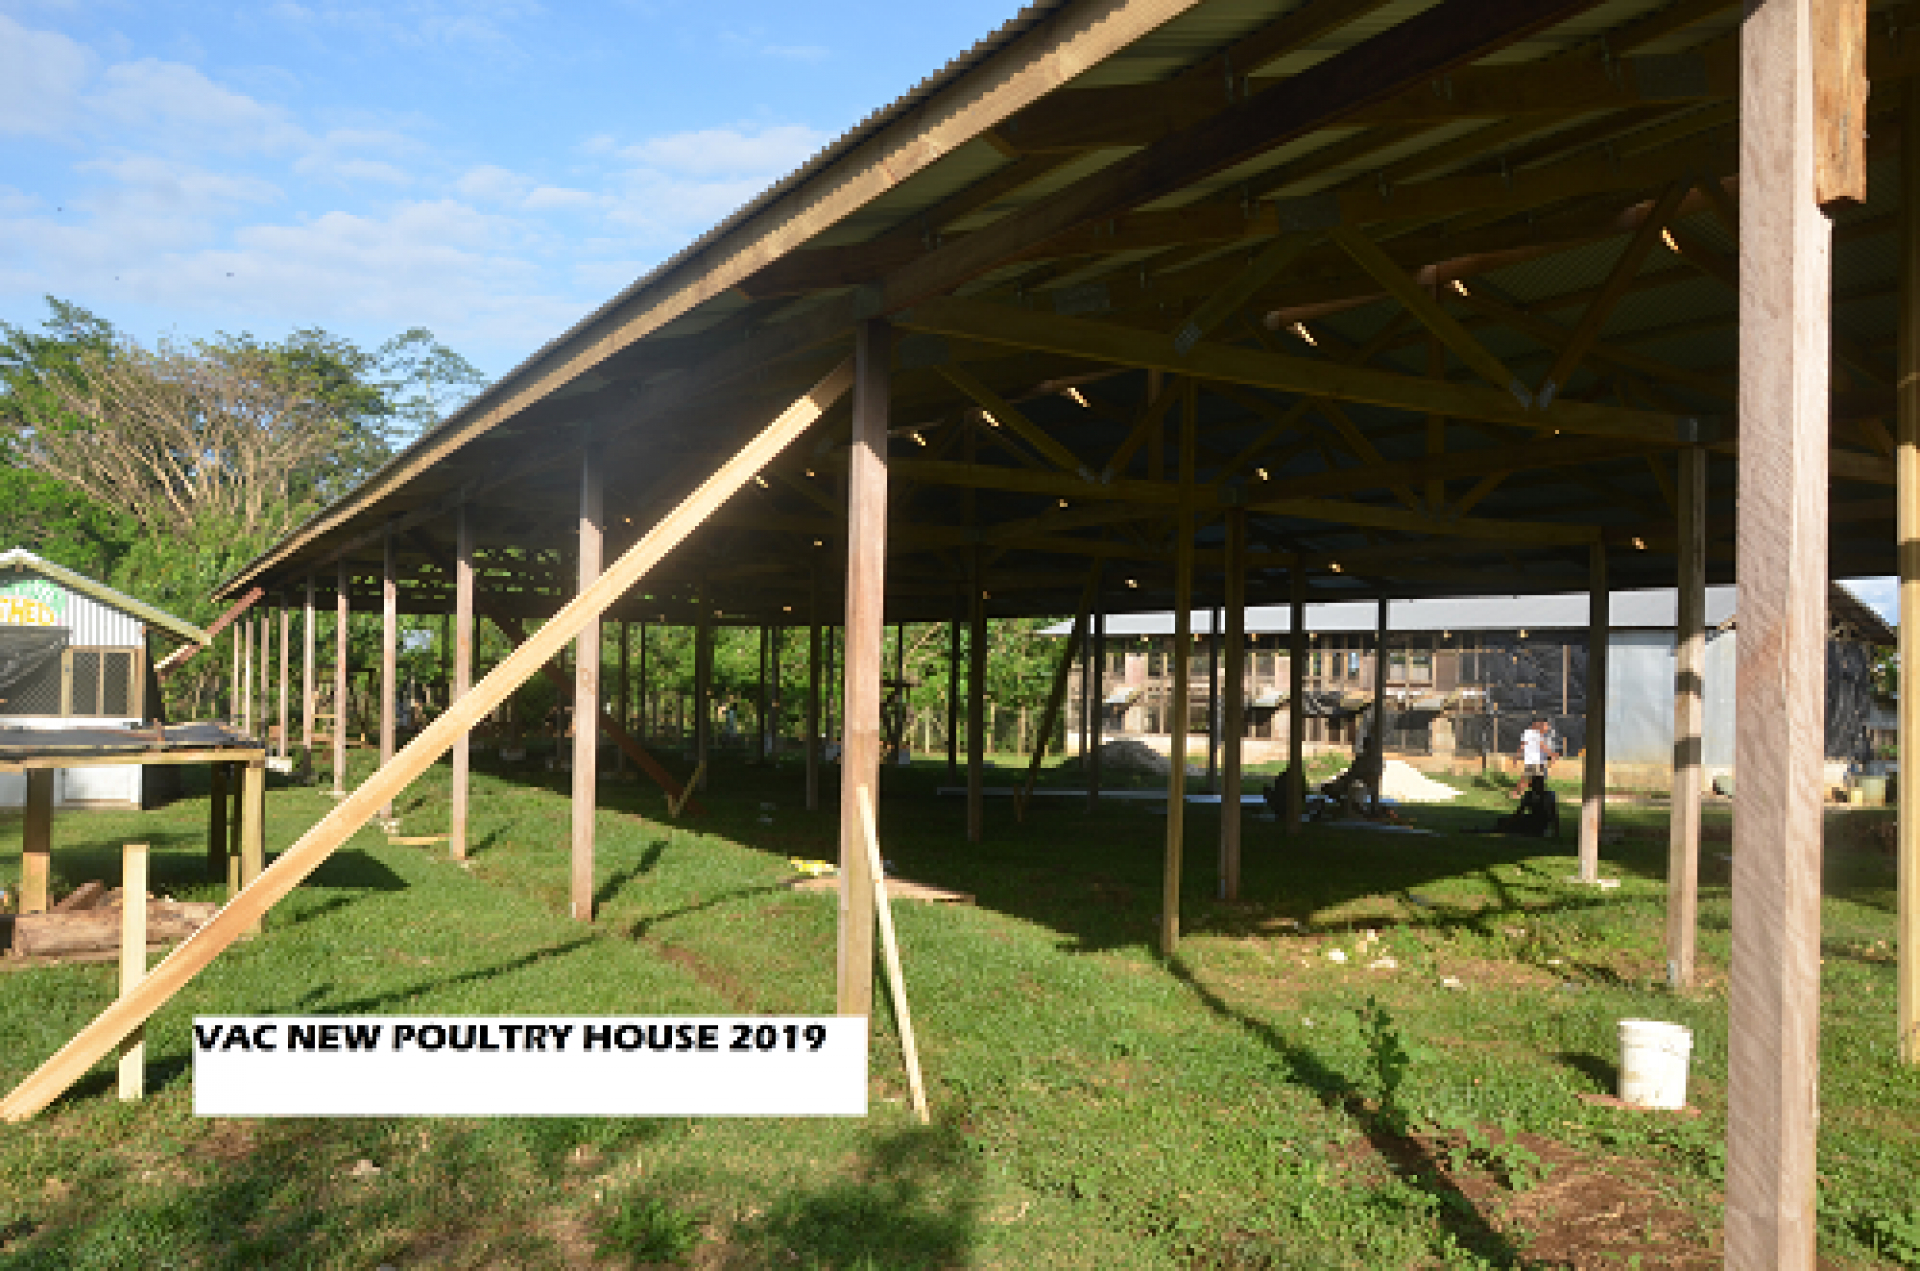 Farm New Poultry House